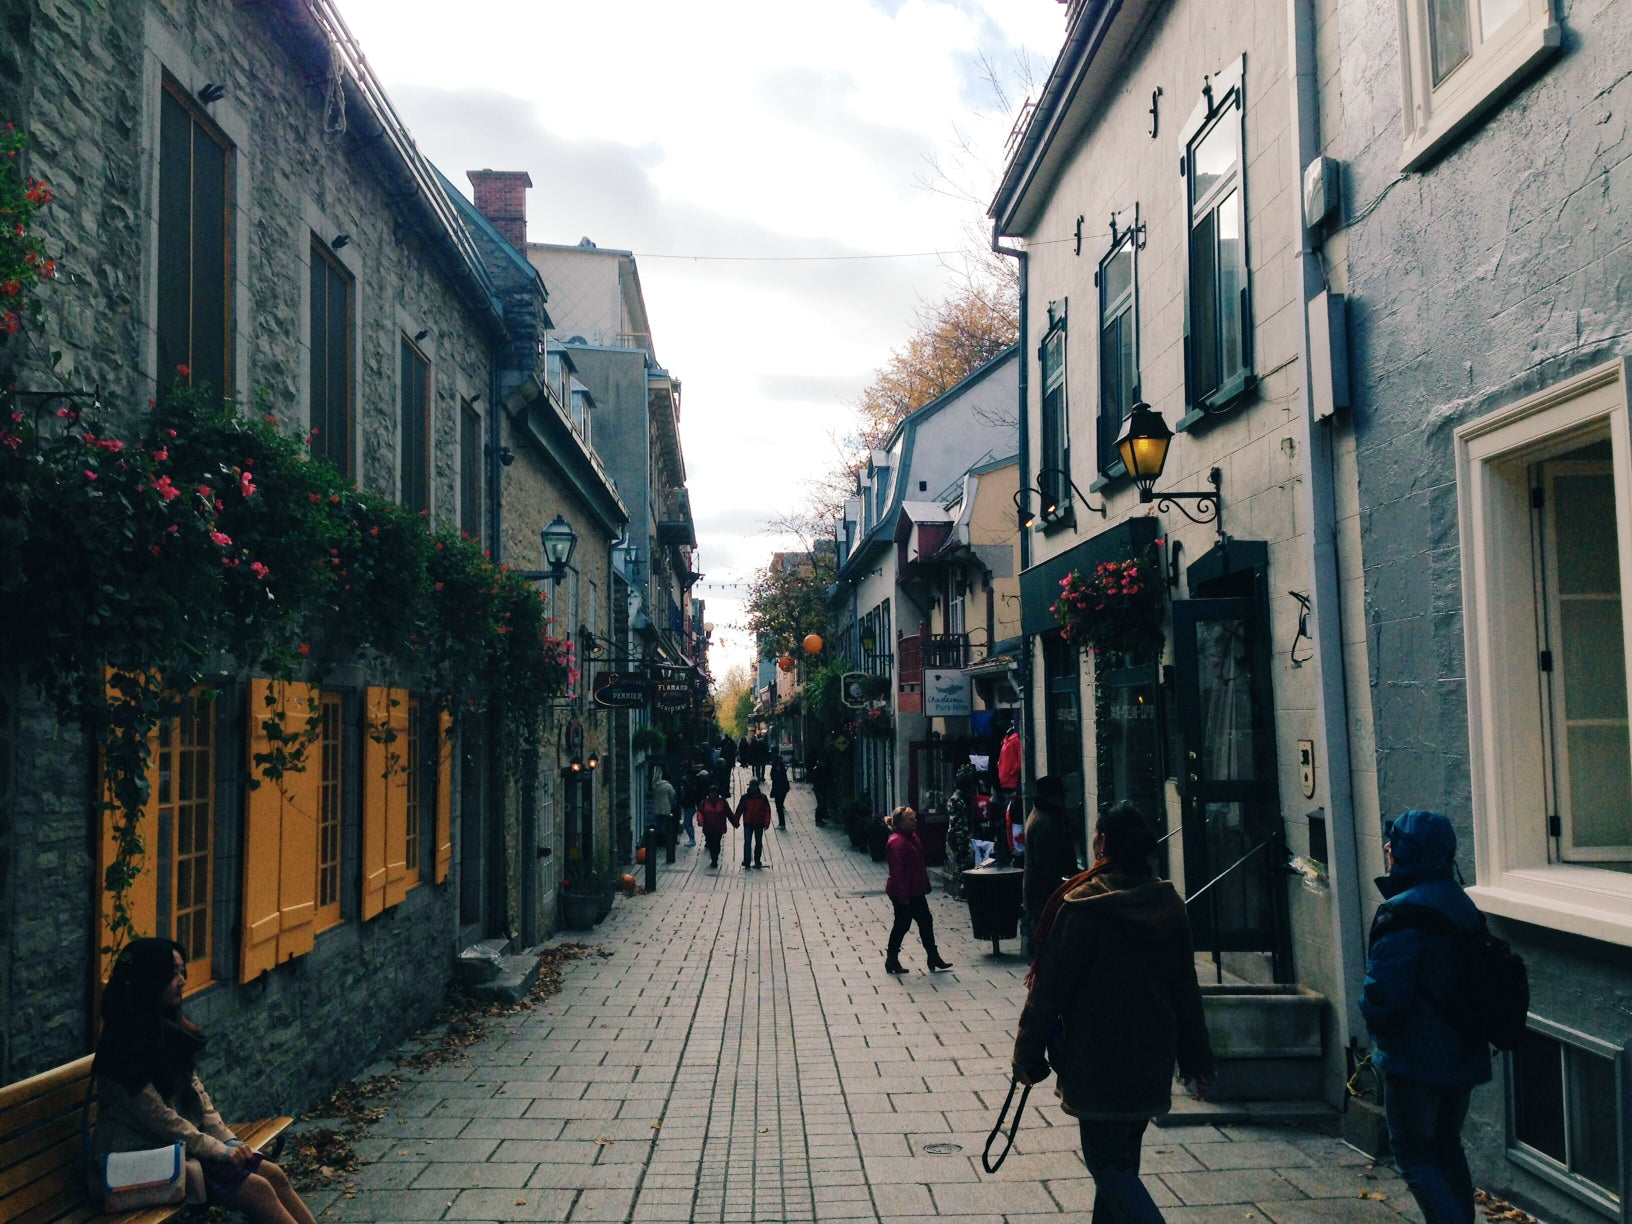 french bistro, french cuisine, french restaurants, lapin saute, bistro sous le fort, petit champlain, old town, quebec city, quebec, fall, autumn, travel, canada travel, canada